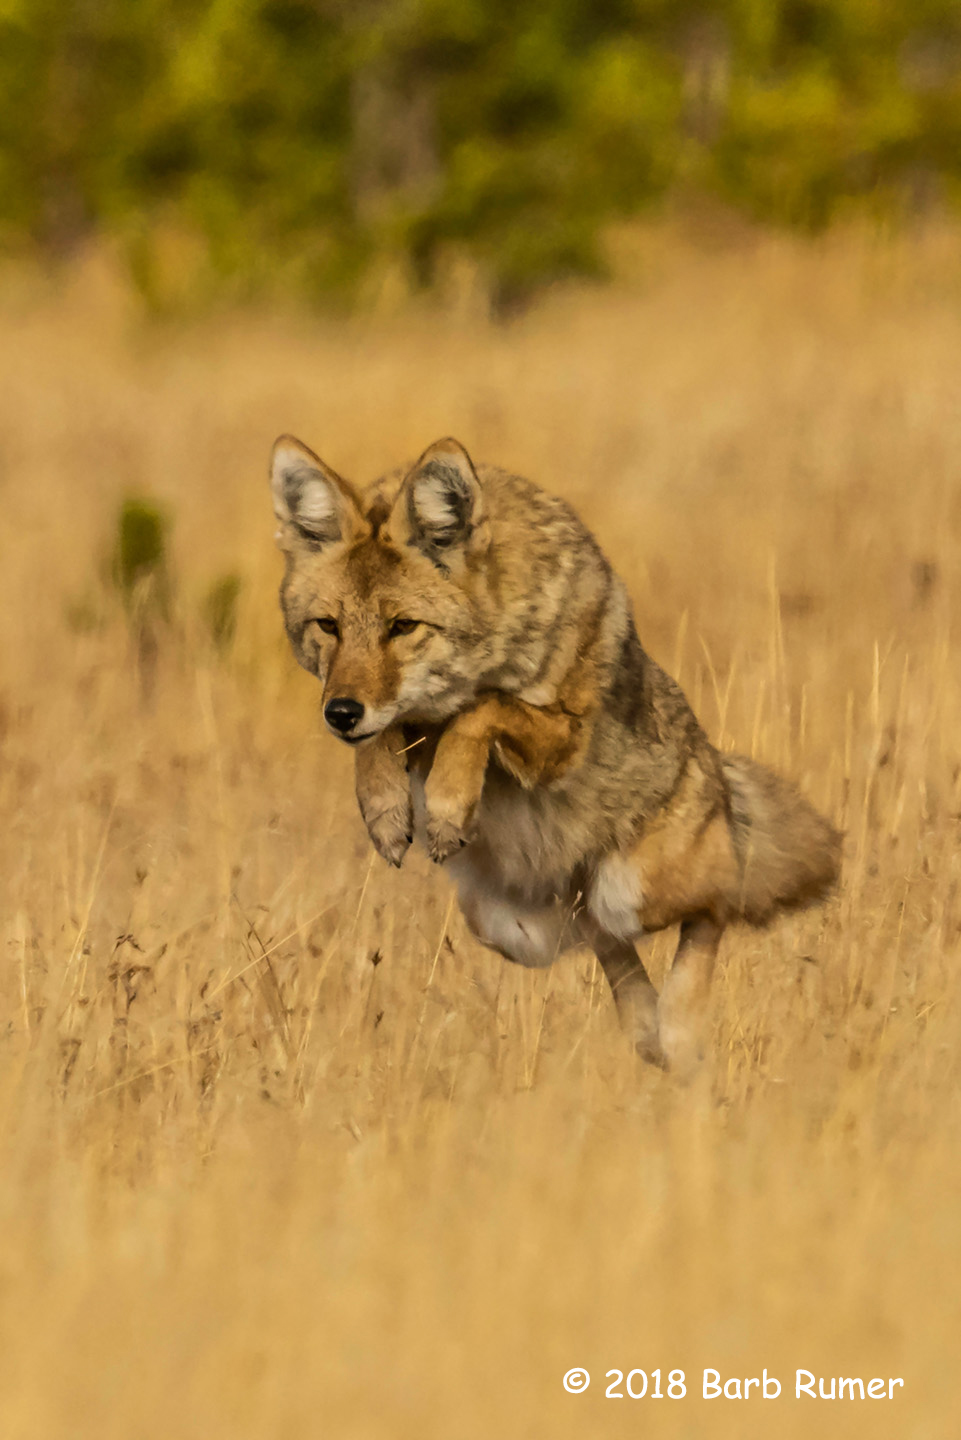 3rd Place Wildlife - Dancing Coyote by Barb Rumer